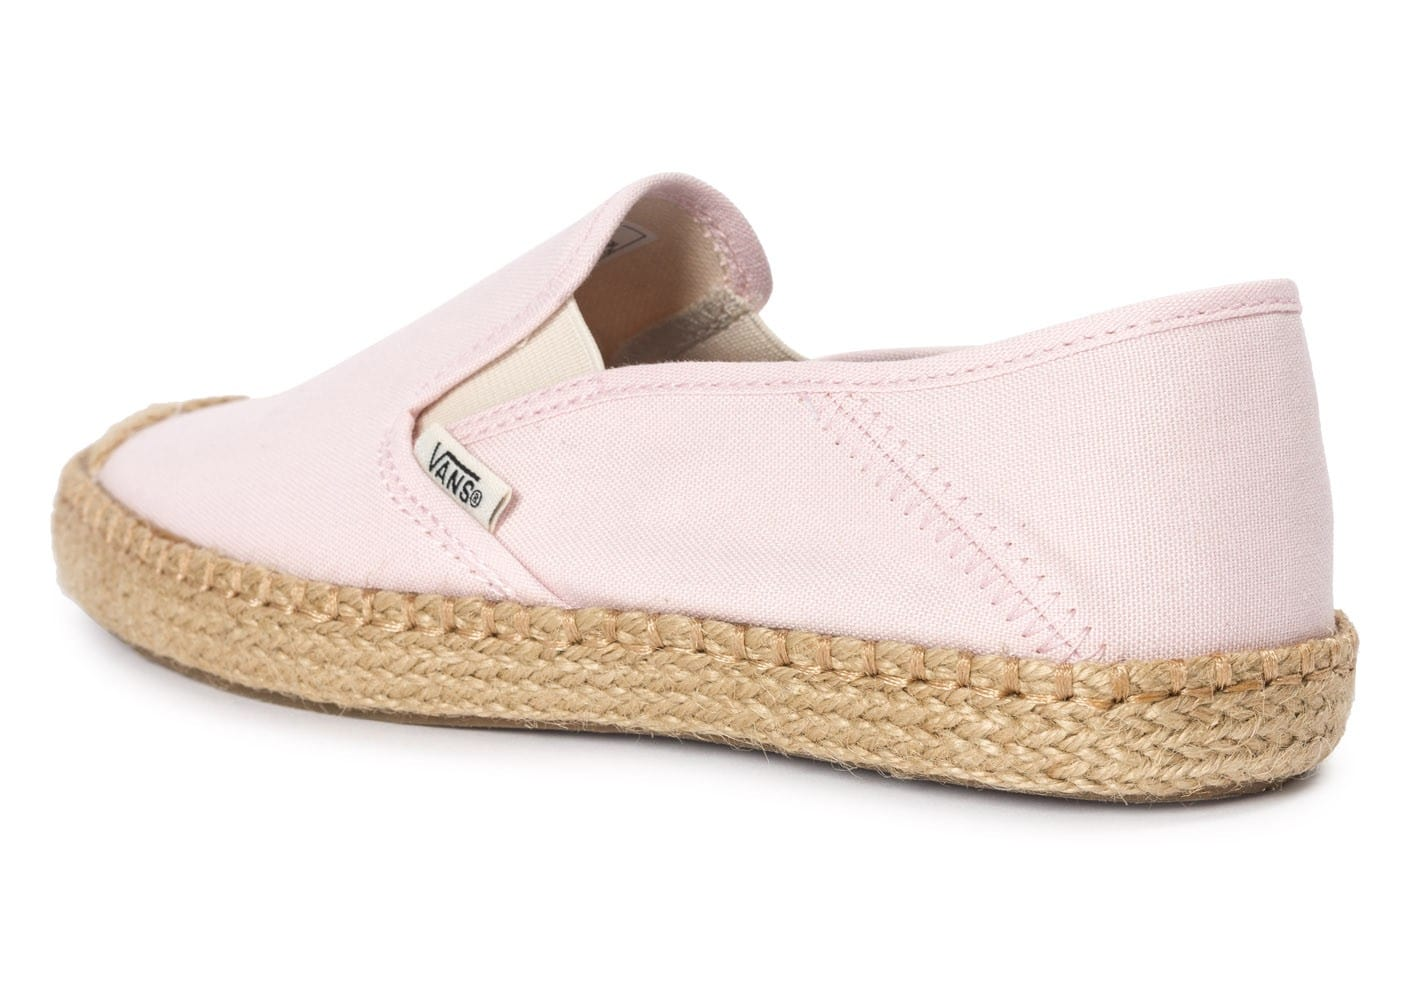 vans slip on espadrille rose chaussures chaussures chausport. Black Bedroom Furniture Sets. Home Design Ideas